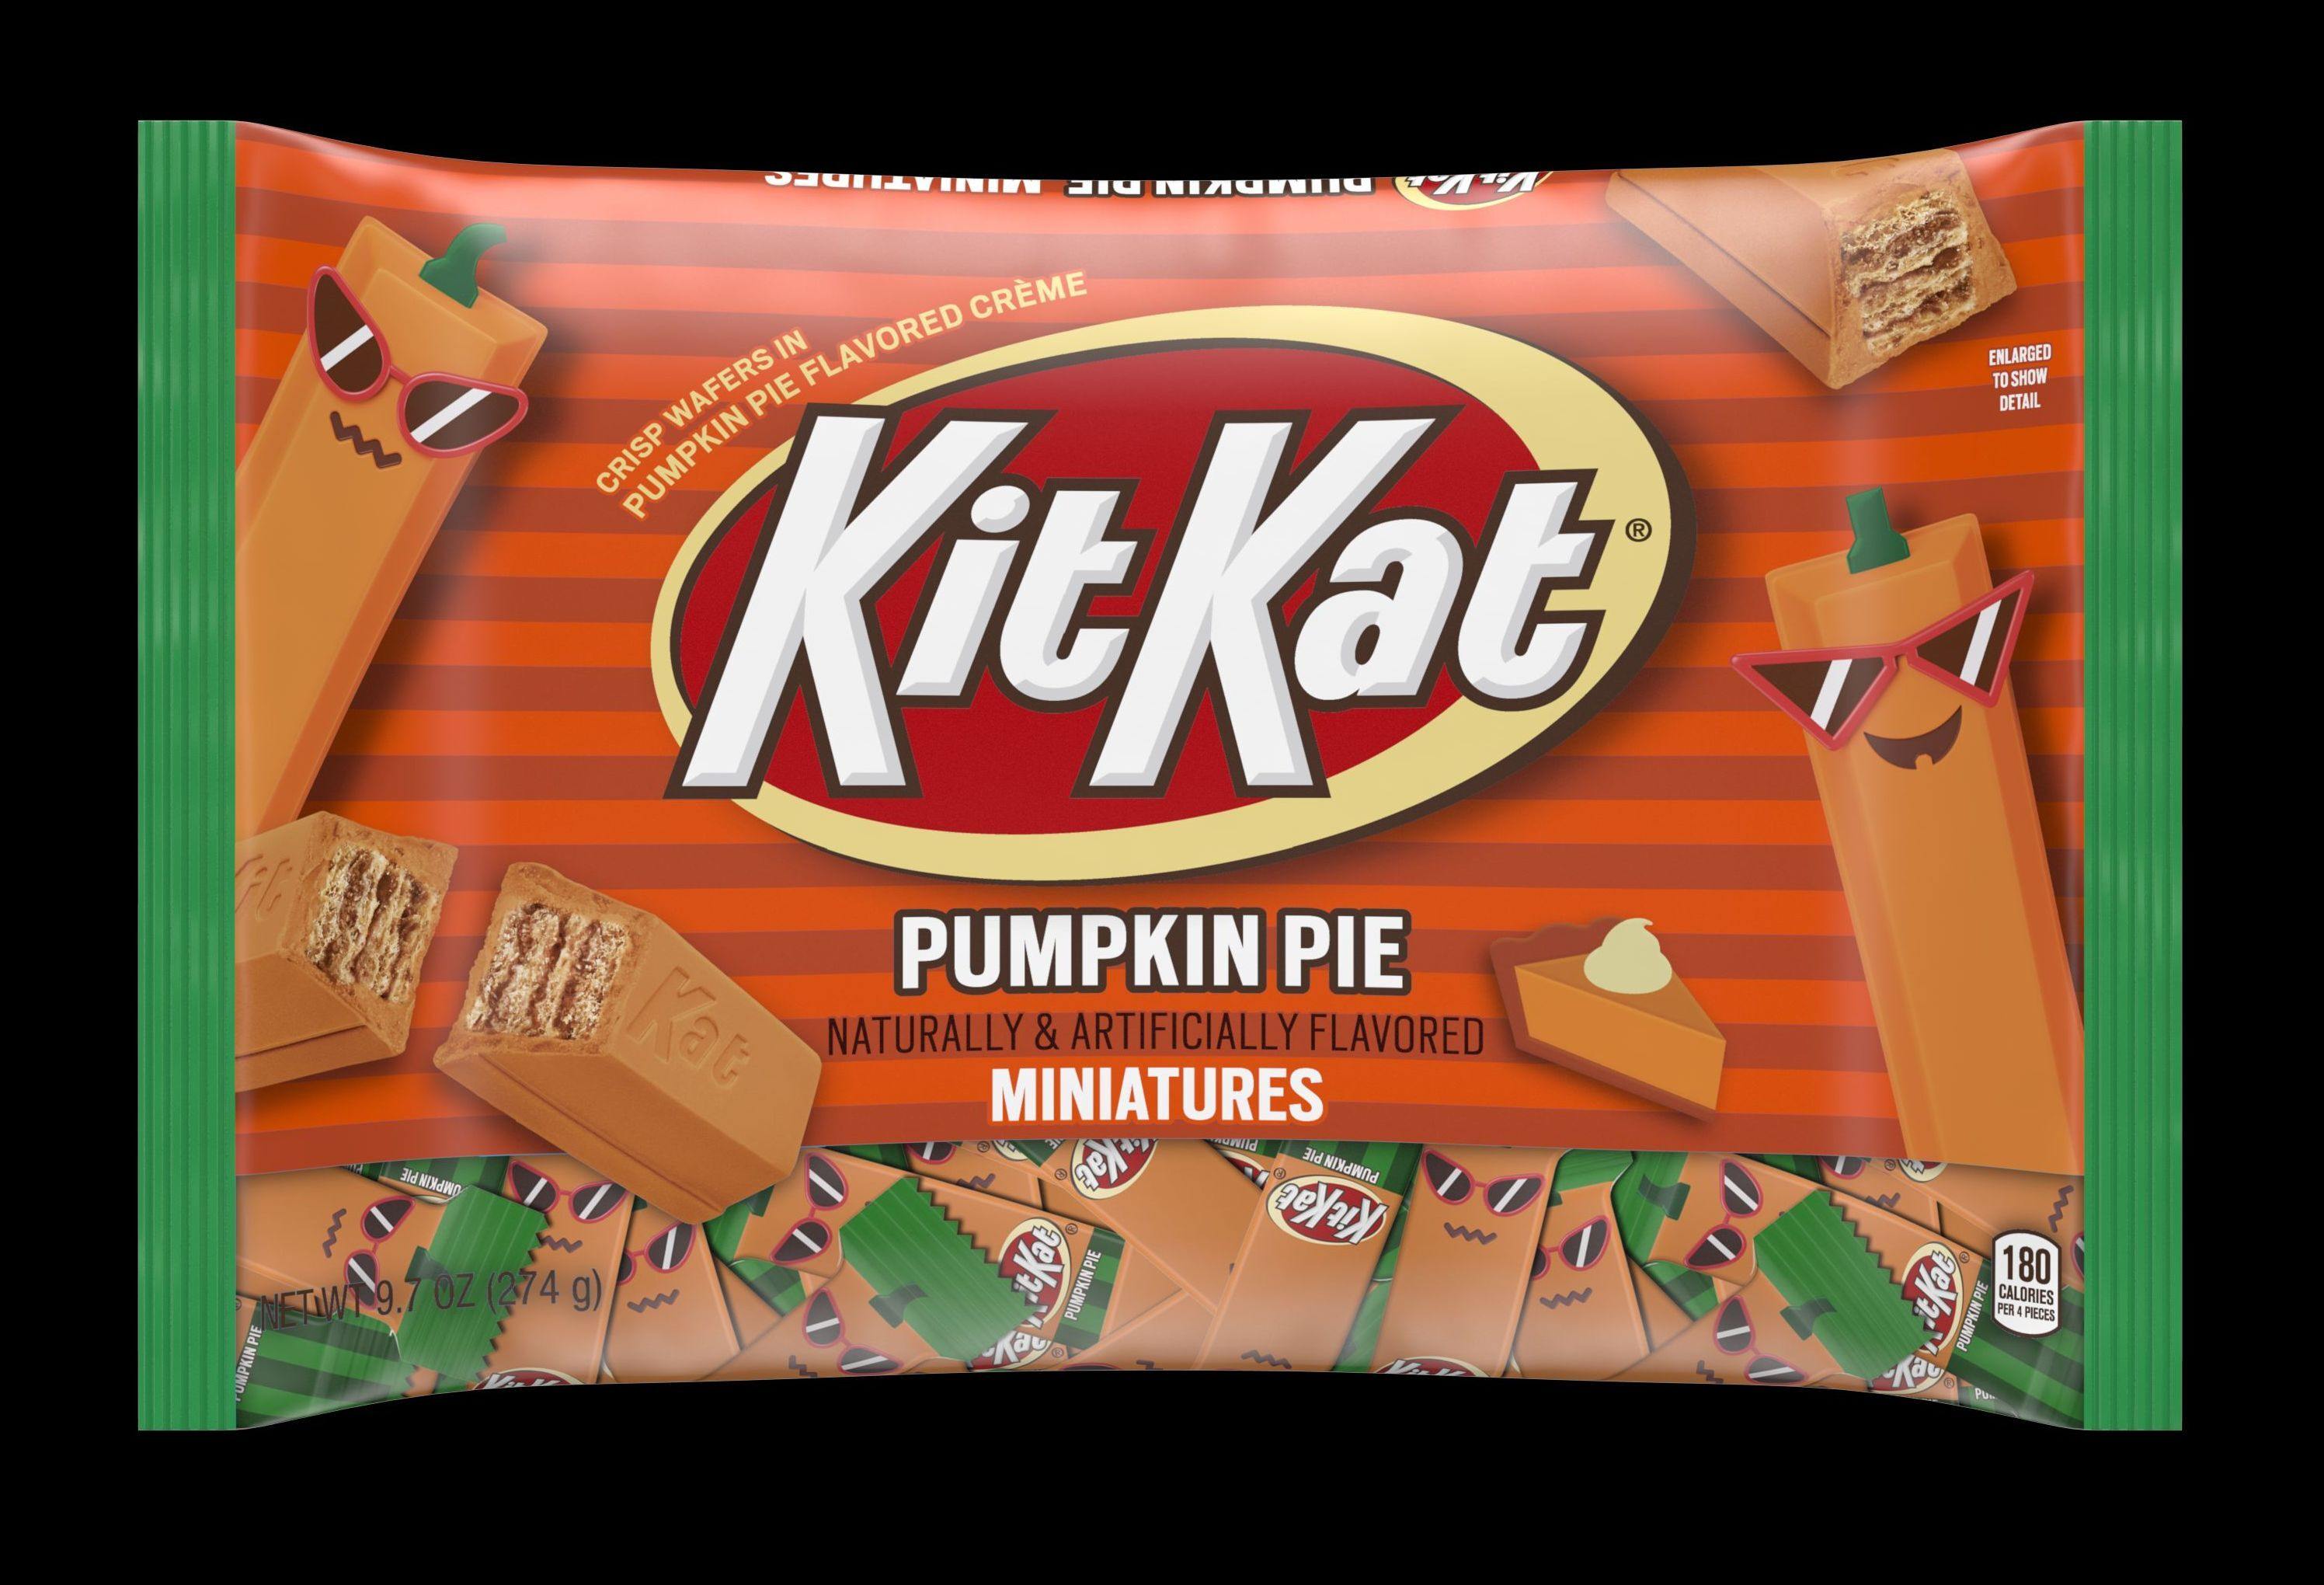 Kit Kat pumpkin pie is the Halloween candy you will steal from your kids